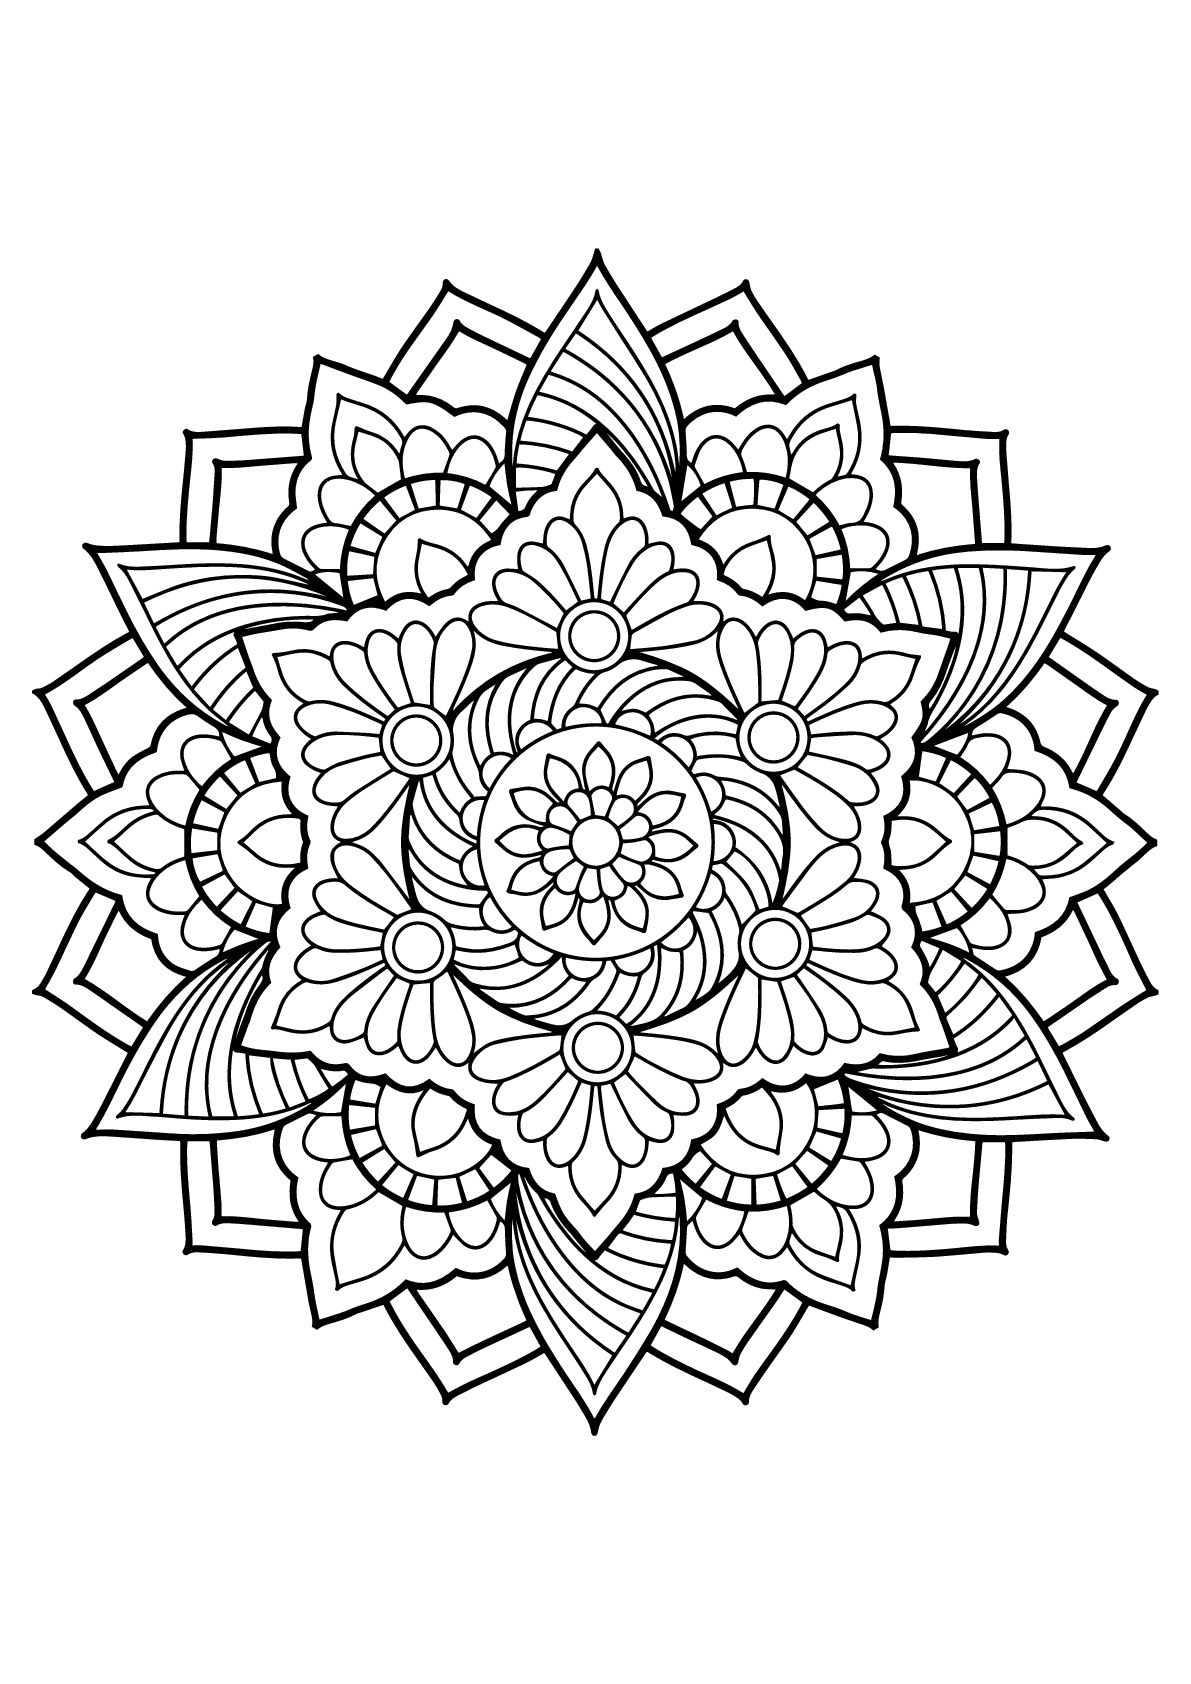 mandala colouring pages for kids mandalas for children mandalas kids coloring pages mandala for colouring pages kids